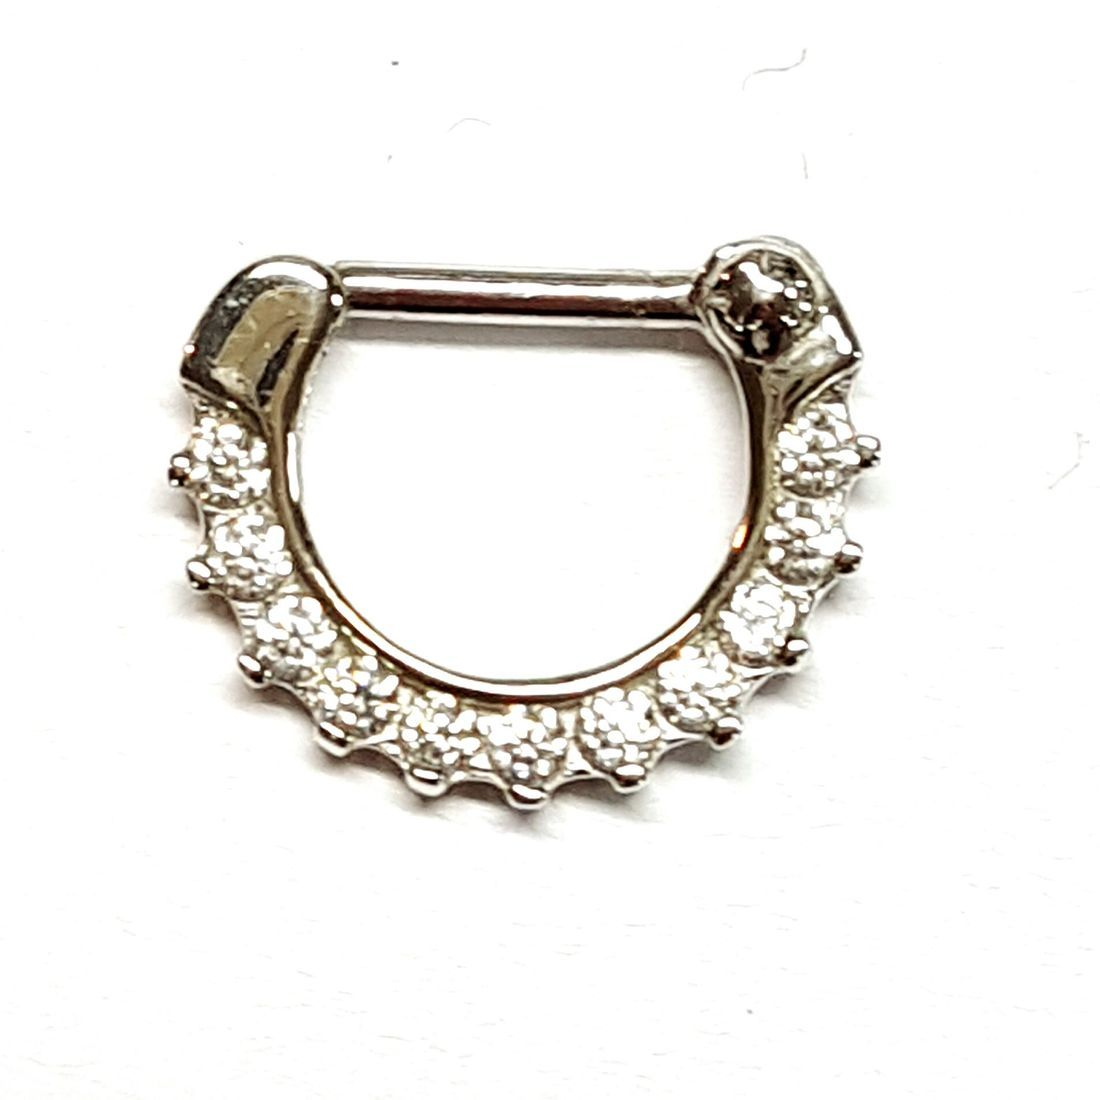 14ct Gold Cubic Zirconia Septum Clicker available from Kazbah online and our Leicester city centre shop